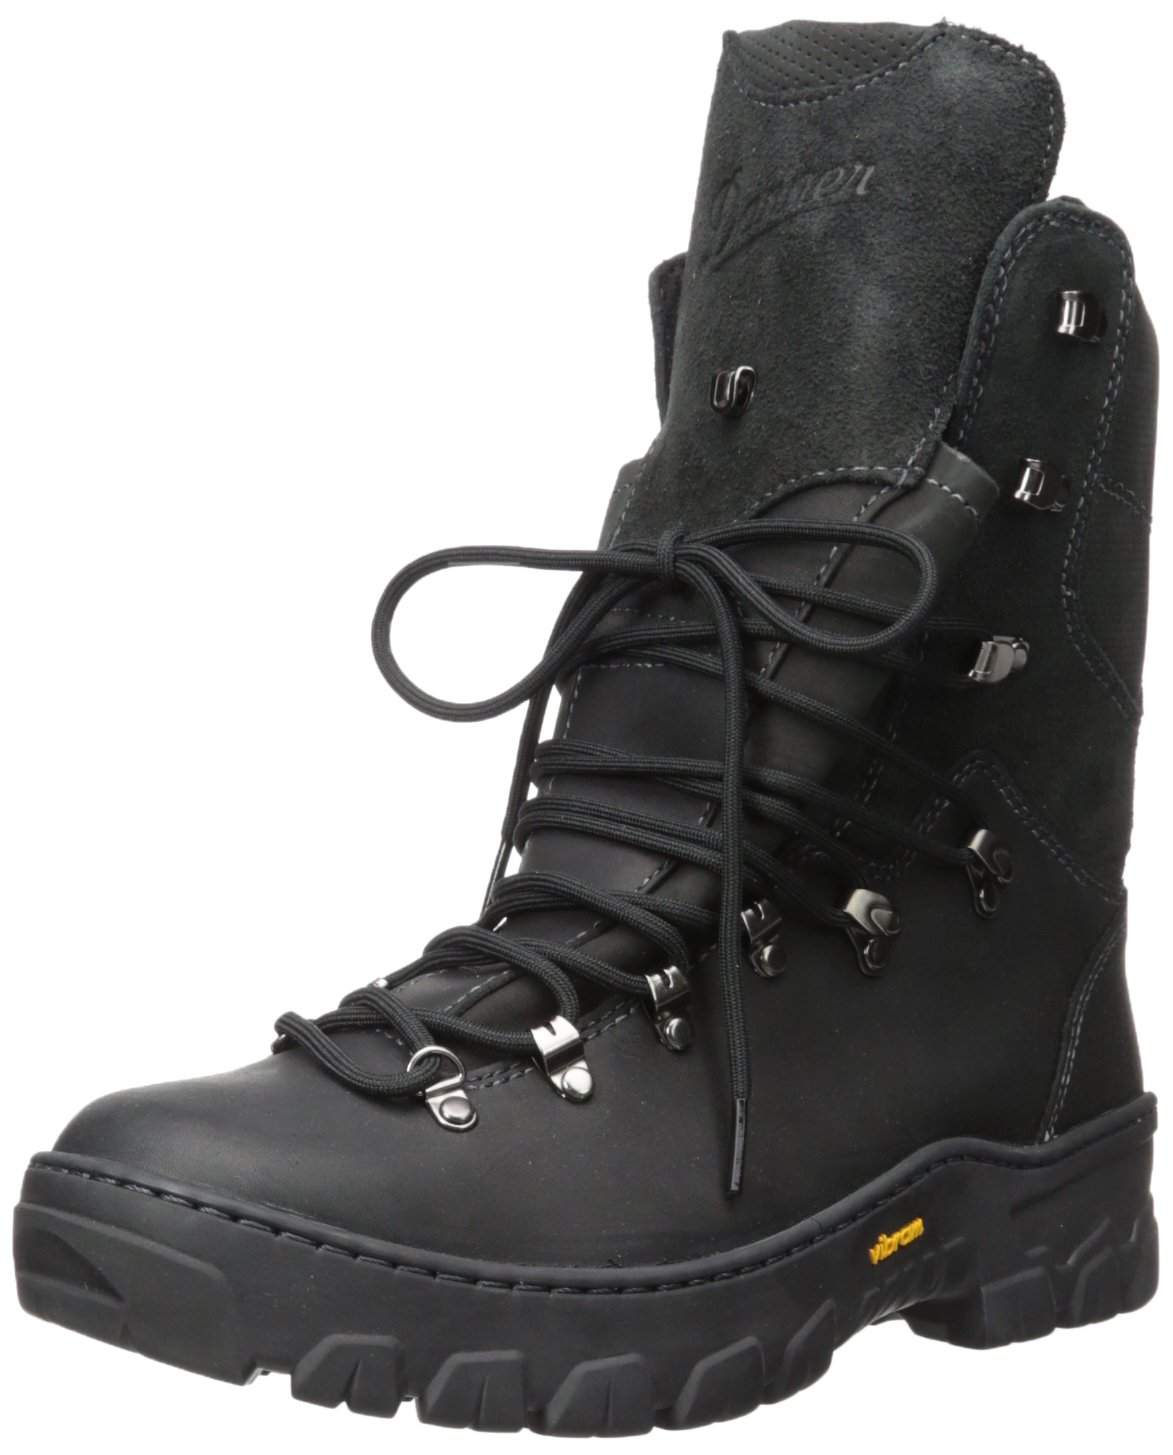 Danner Men's Wildland Tactical Firefighter 8'' Fire and Safety Boot, Black Smooth-Out, 8.5 B US by Danner